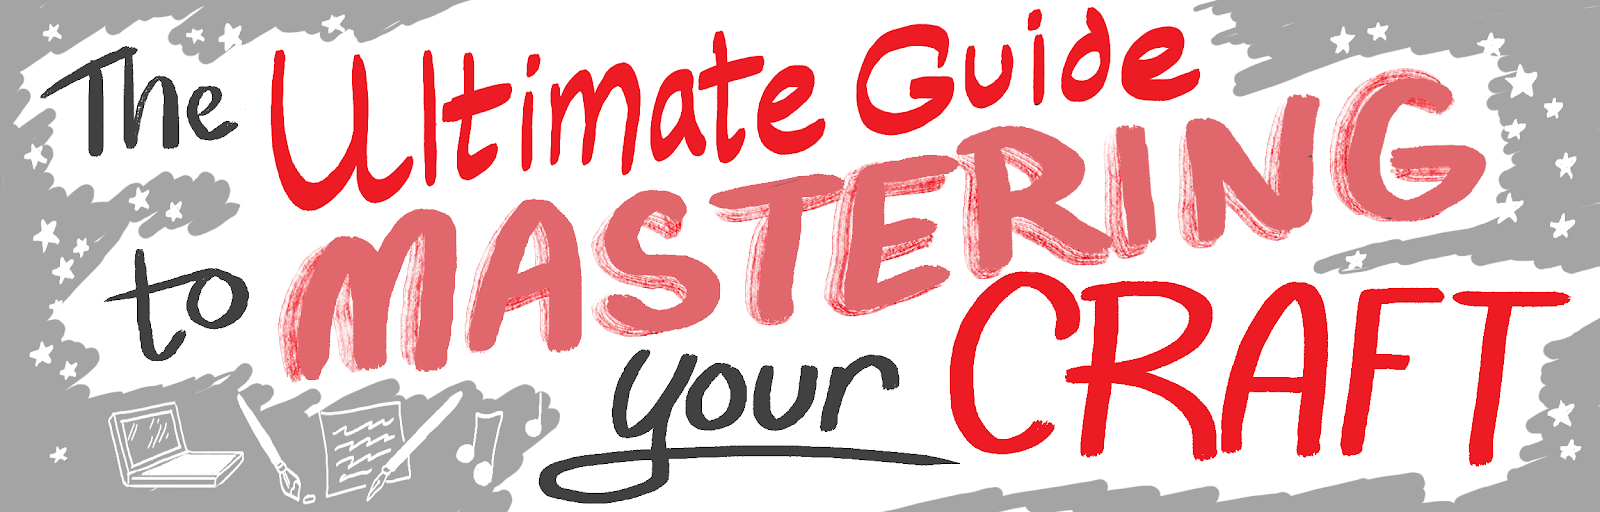 The Ultimate Guide To Mastering Your Craft The Mission Medium